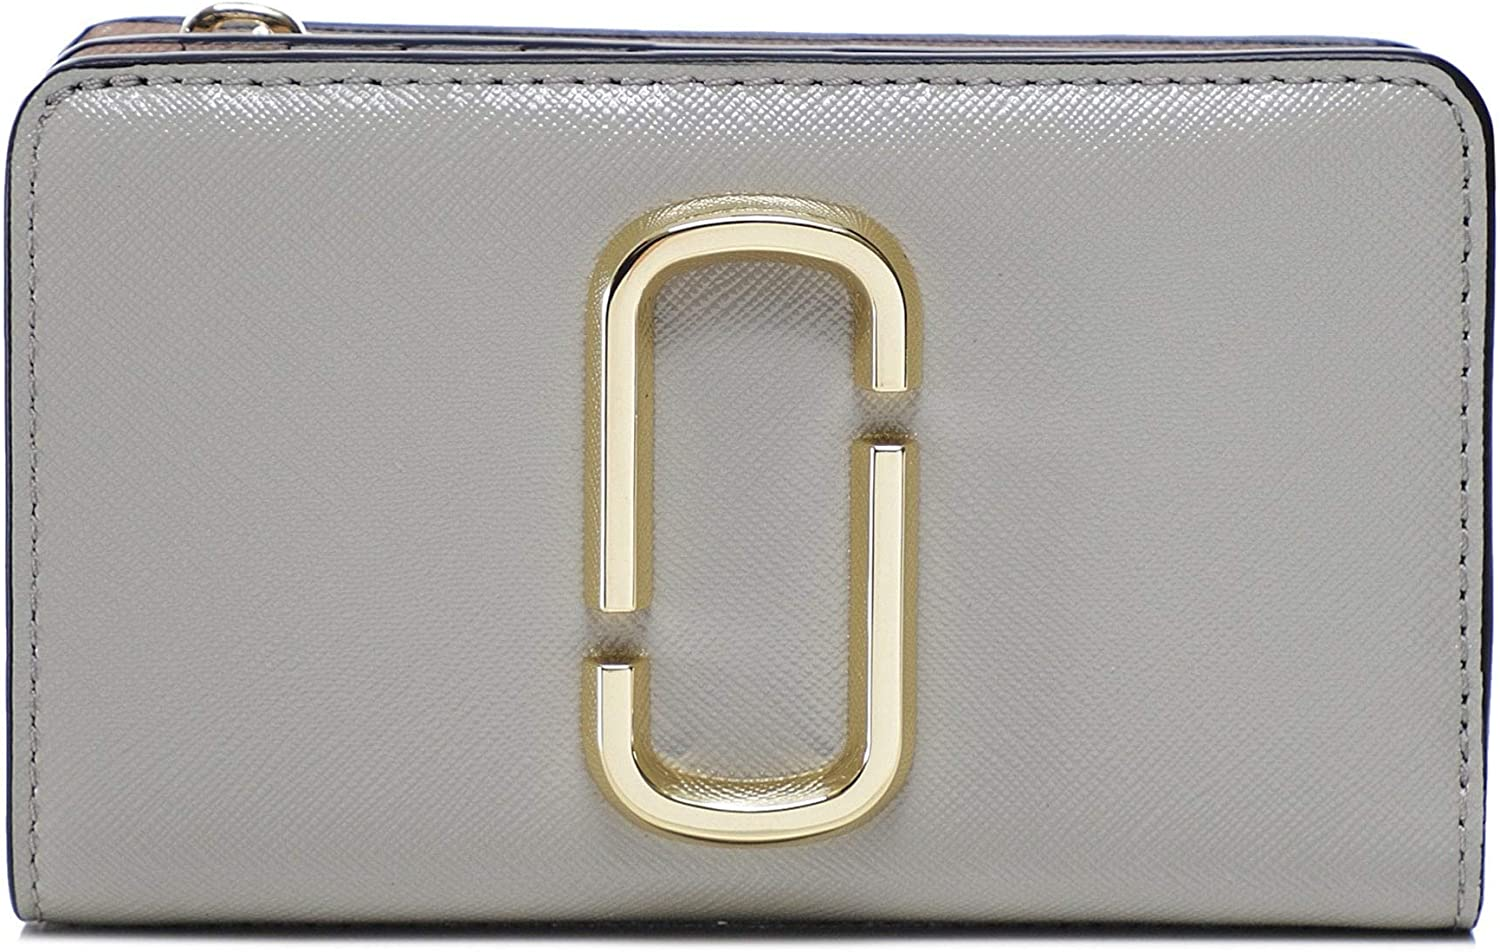 Marc Jacobs 2021 new Snapshot Compact Be super welcome Wallet